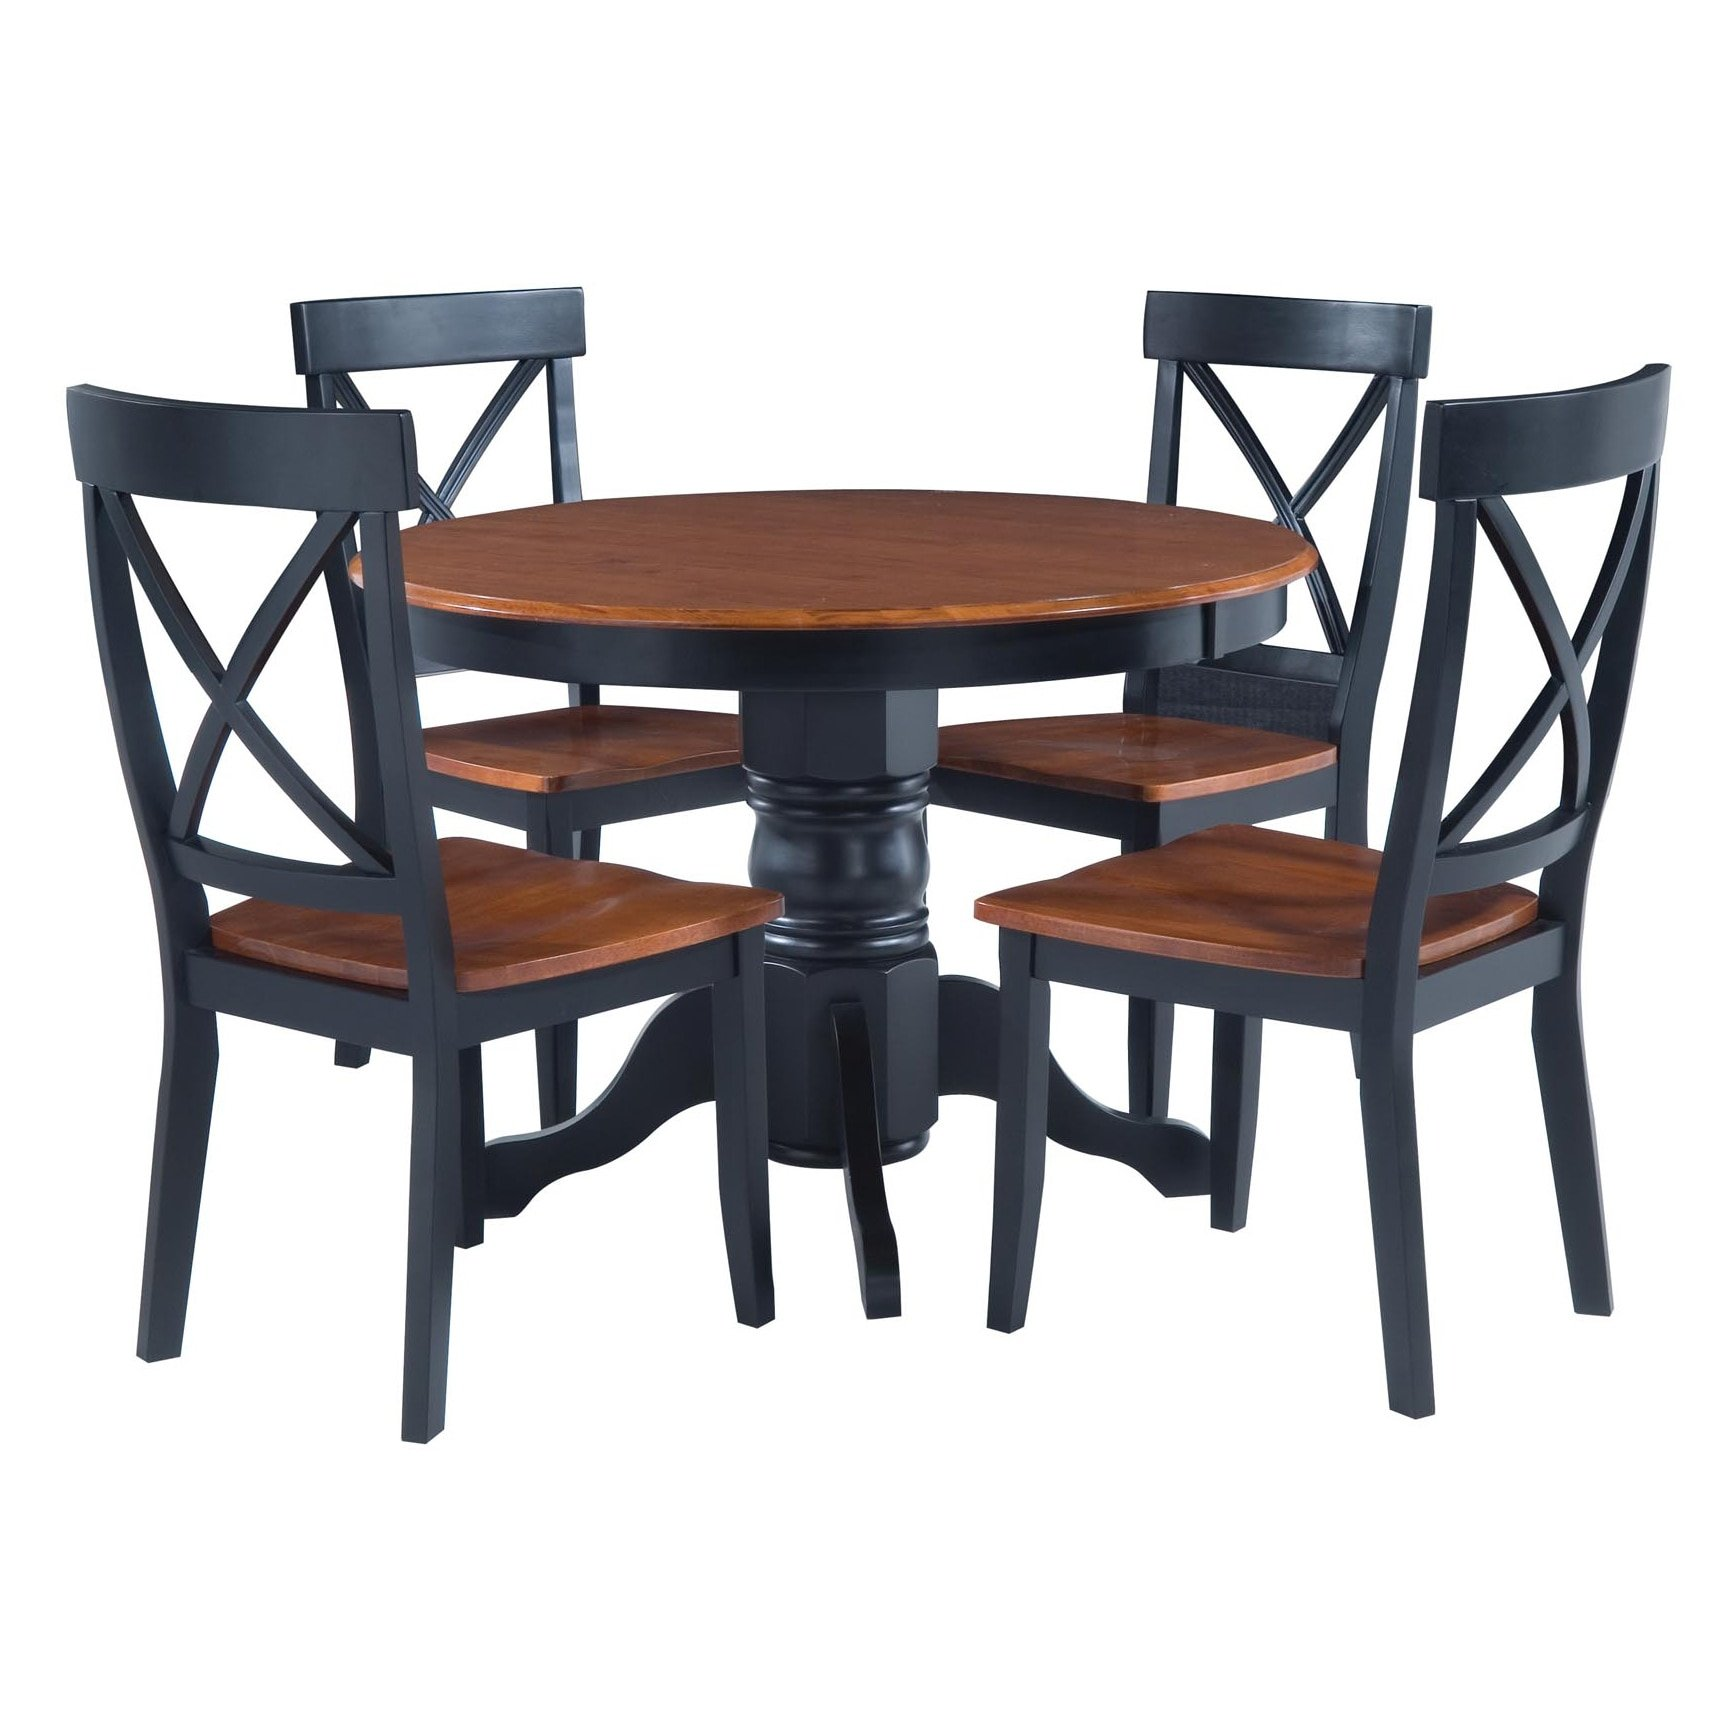 Modern 5-piece Dining Furniture Set Black and Cottage Oak Round Table and Four Chairs for Game Night or Lovely Dinners with Family Home Furniture for Dining Room or Kitchen of Solid Wood, BONUS E-book